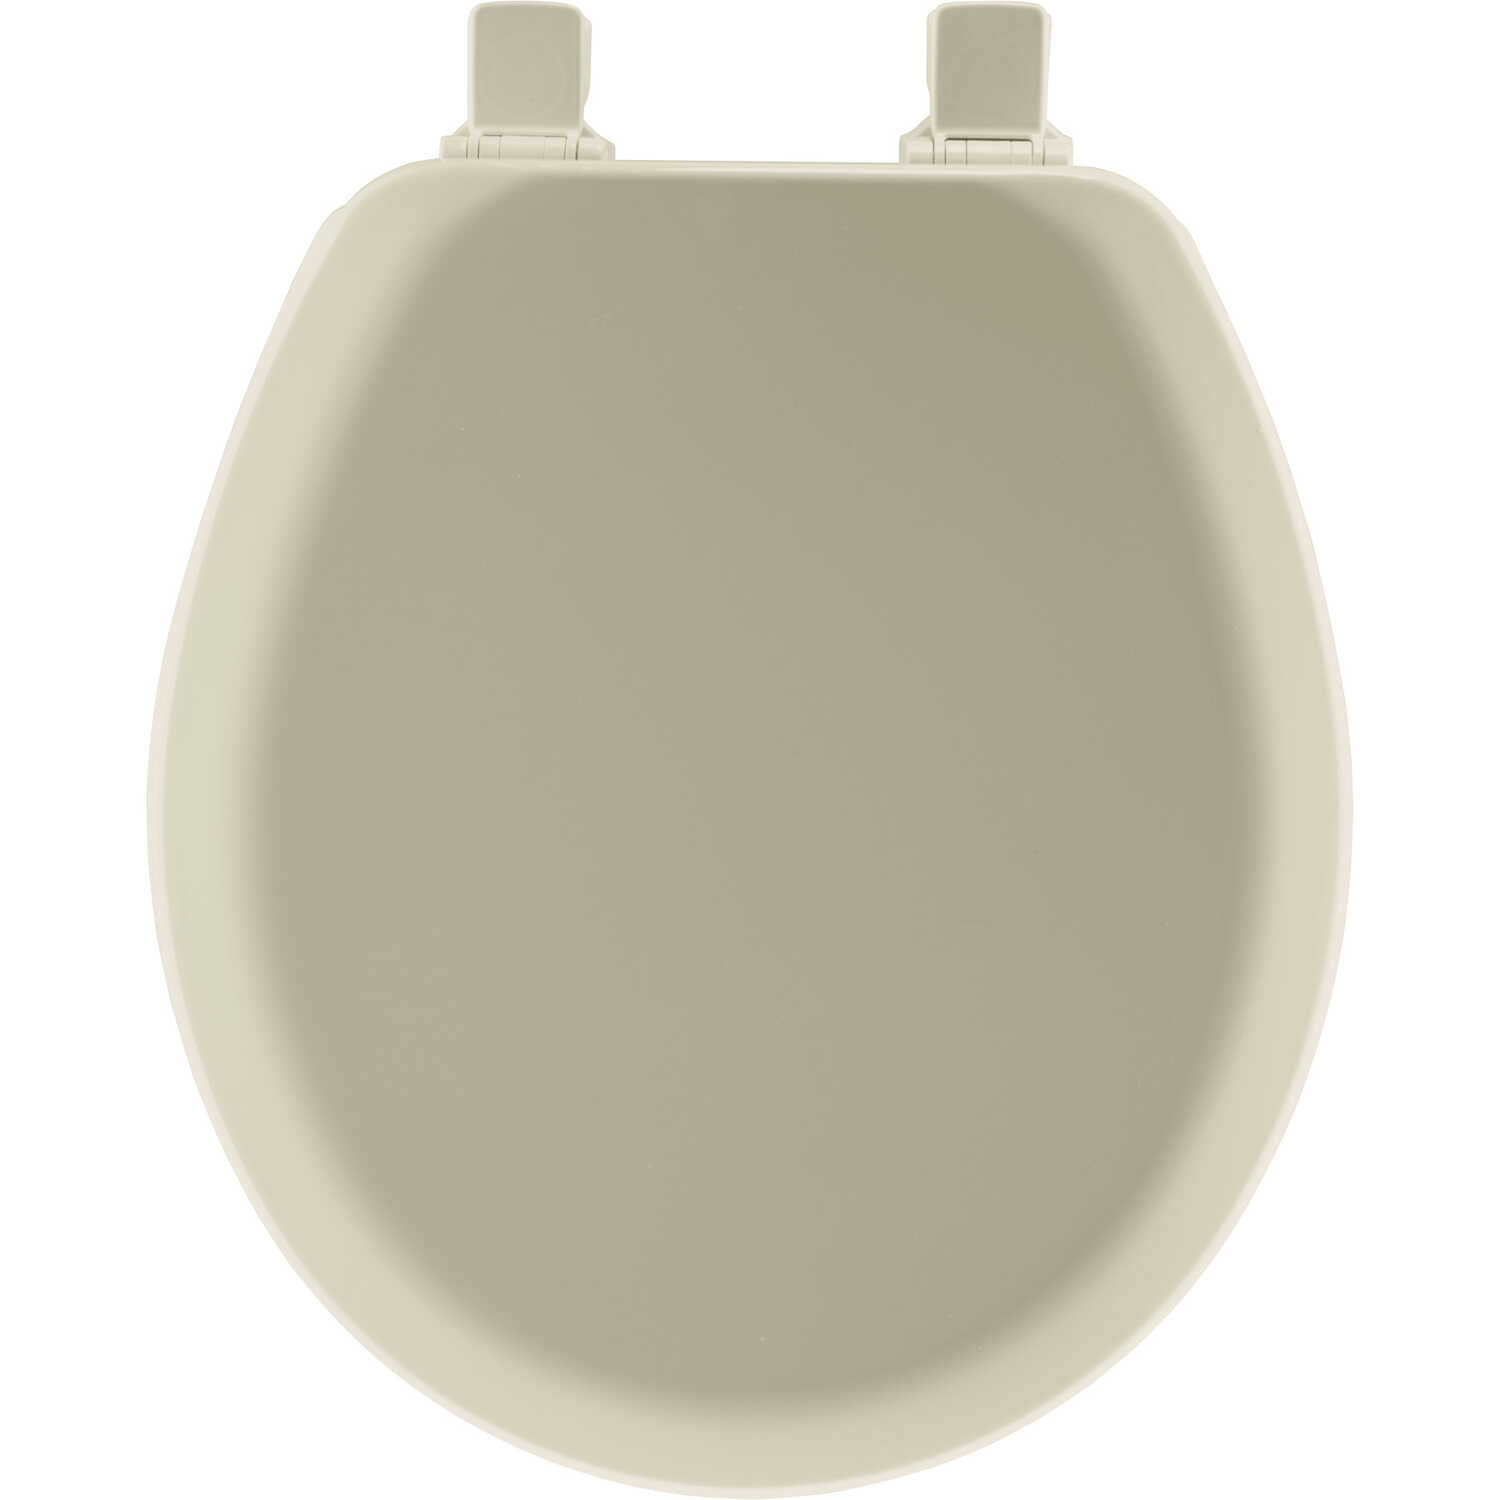 Mayfair  Never Loosens  Round  Bone  Molded Wood  Toilet Seat